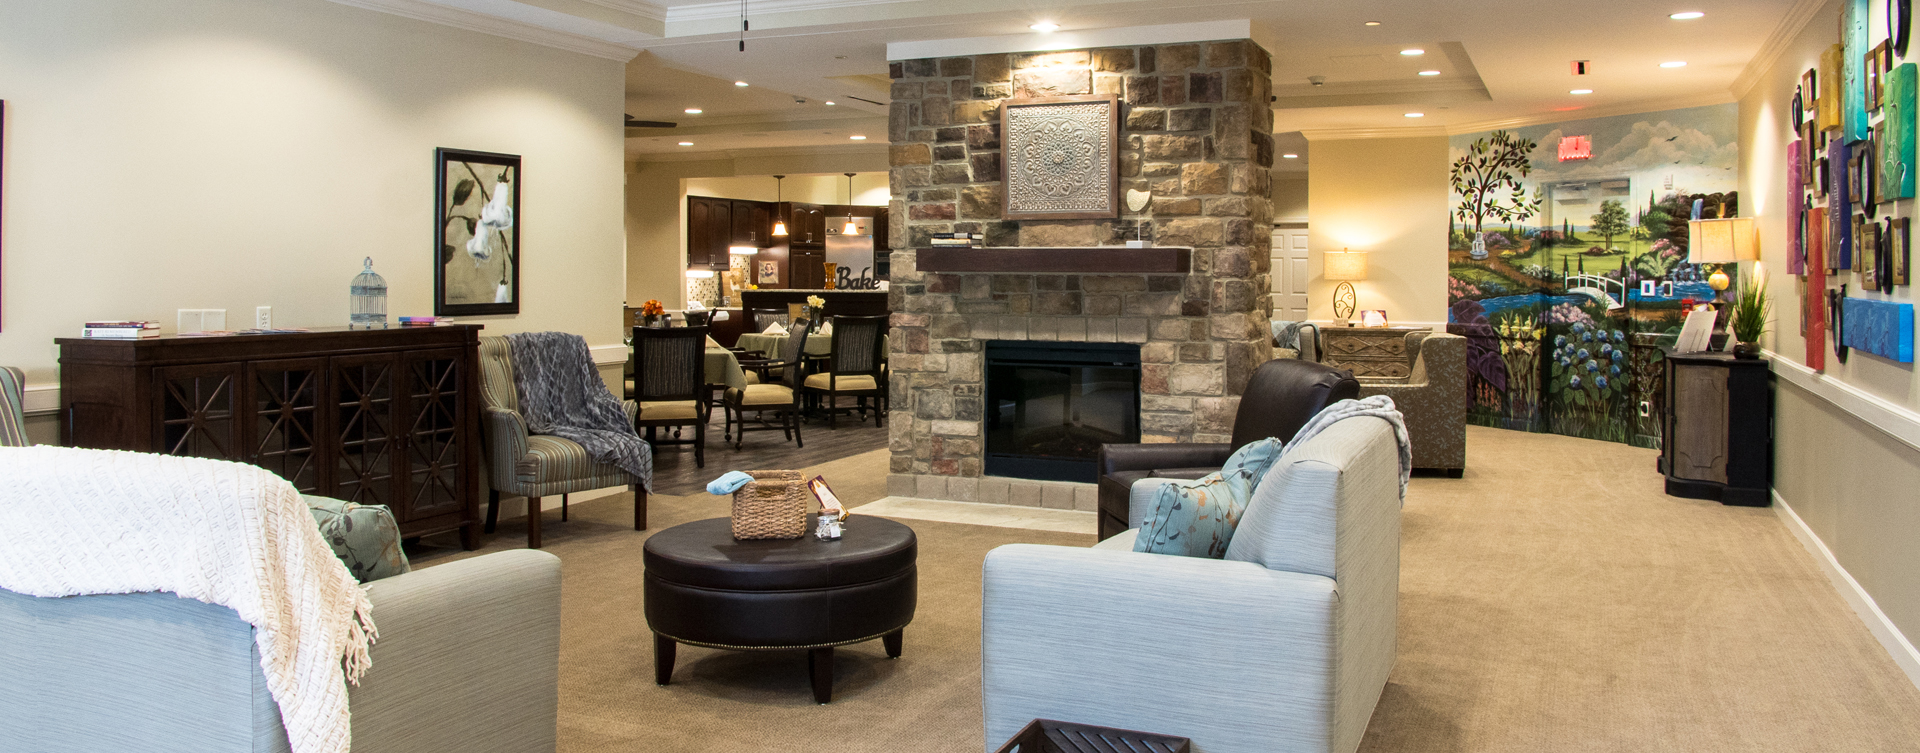 Chairs and sofas sit higher and are easier to get in and out of in the Mary B's living room at Bickford of Chesterfield